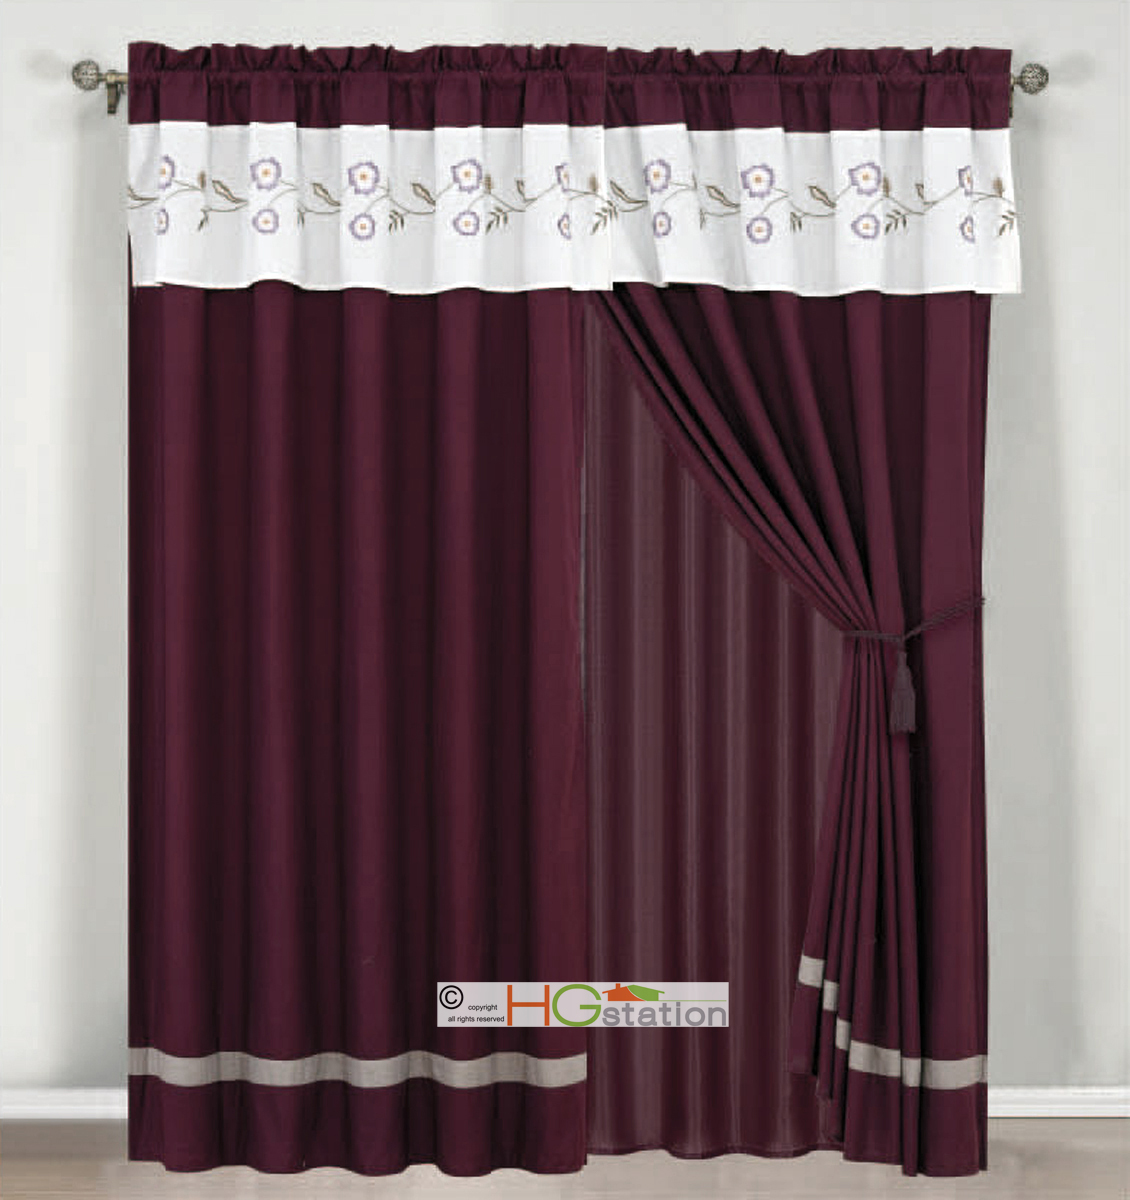 HG station 4-Pc Elegant Floral Striped Embroidery Curtain Set Purple Gray Silver White Valance Drape Liner at Sears.com